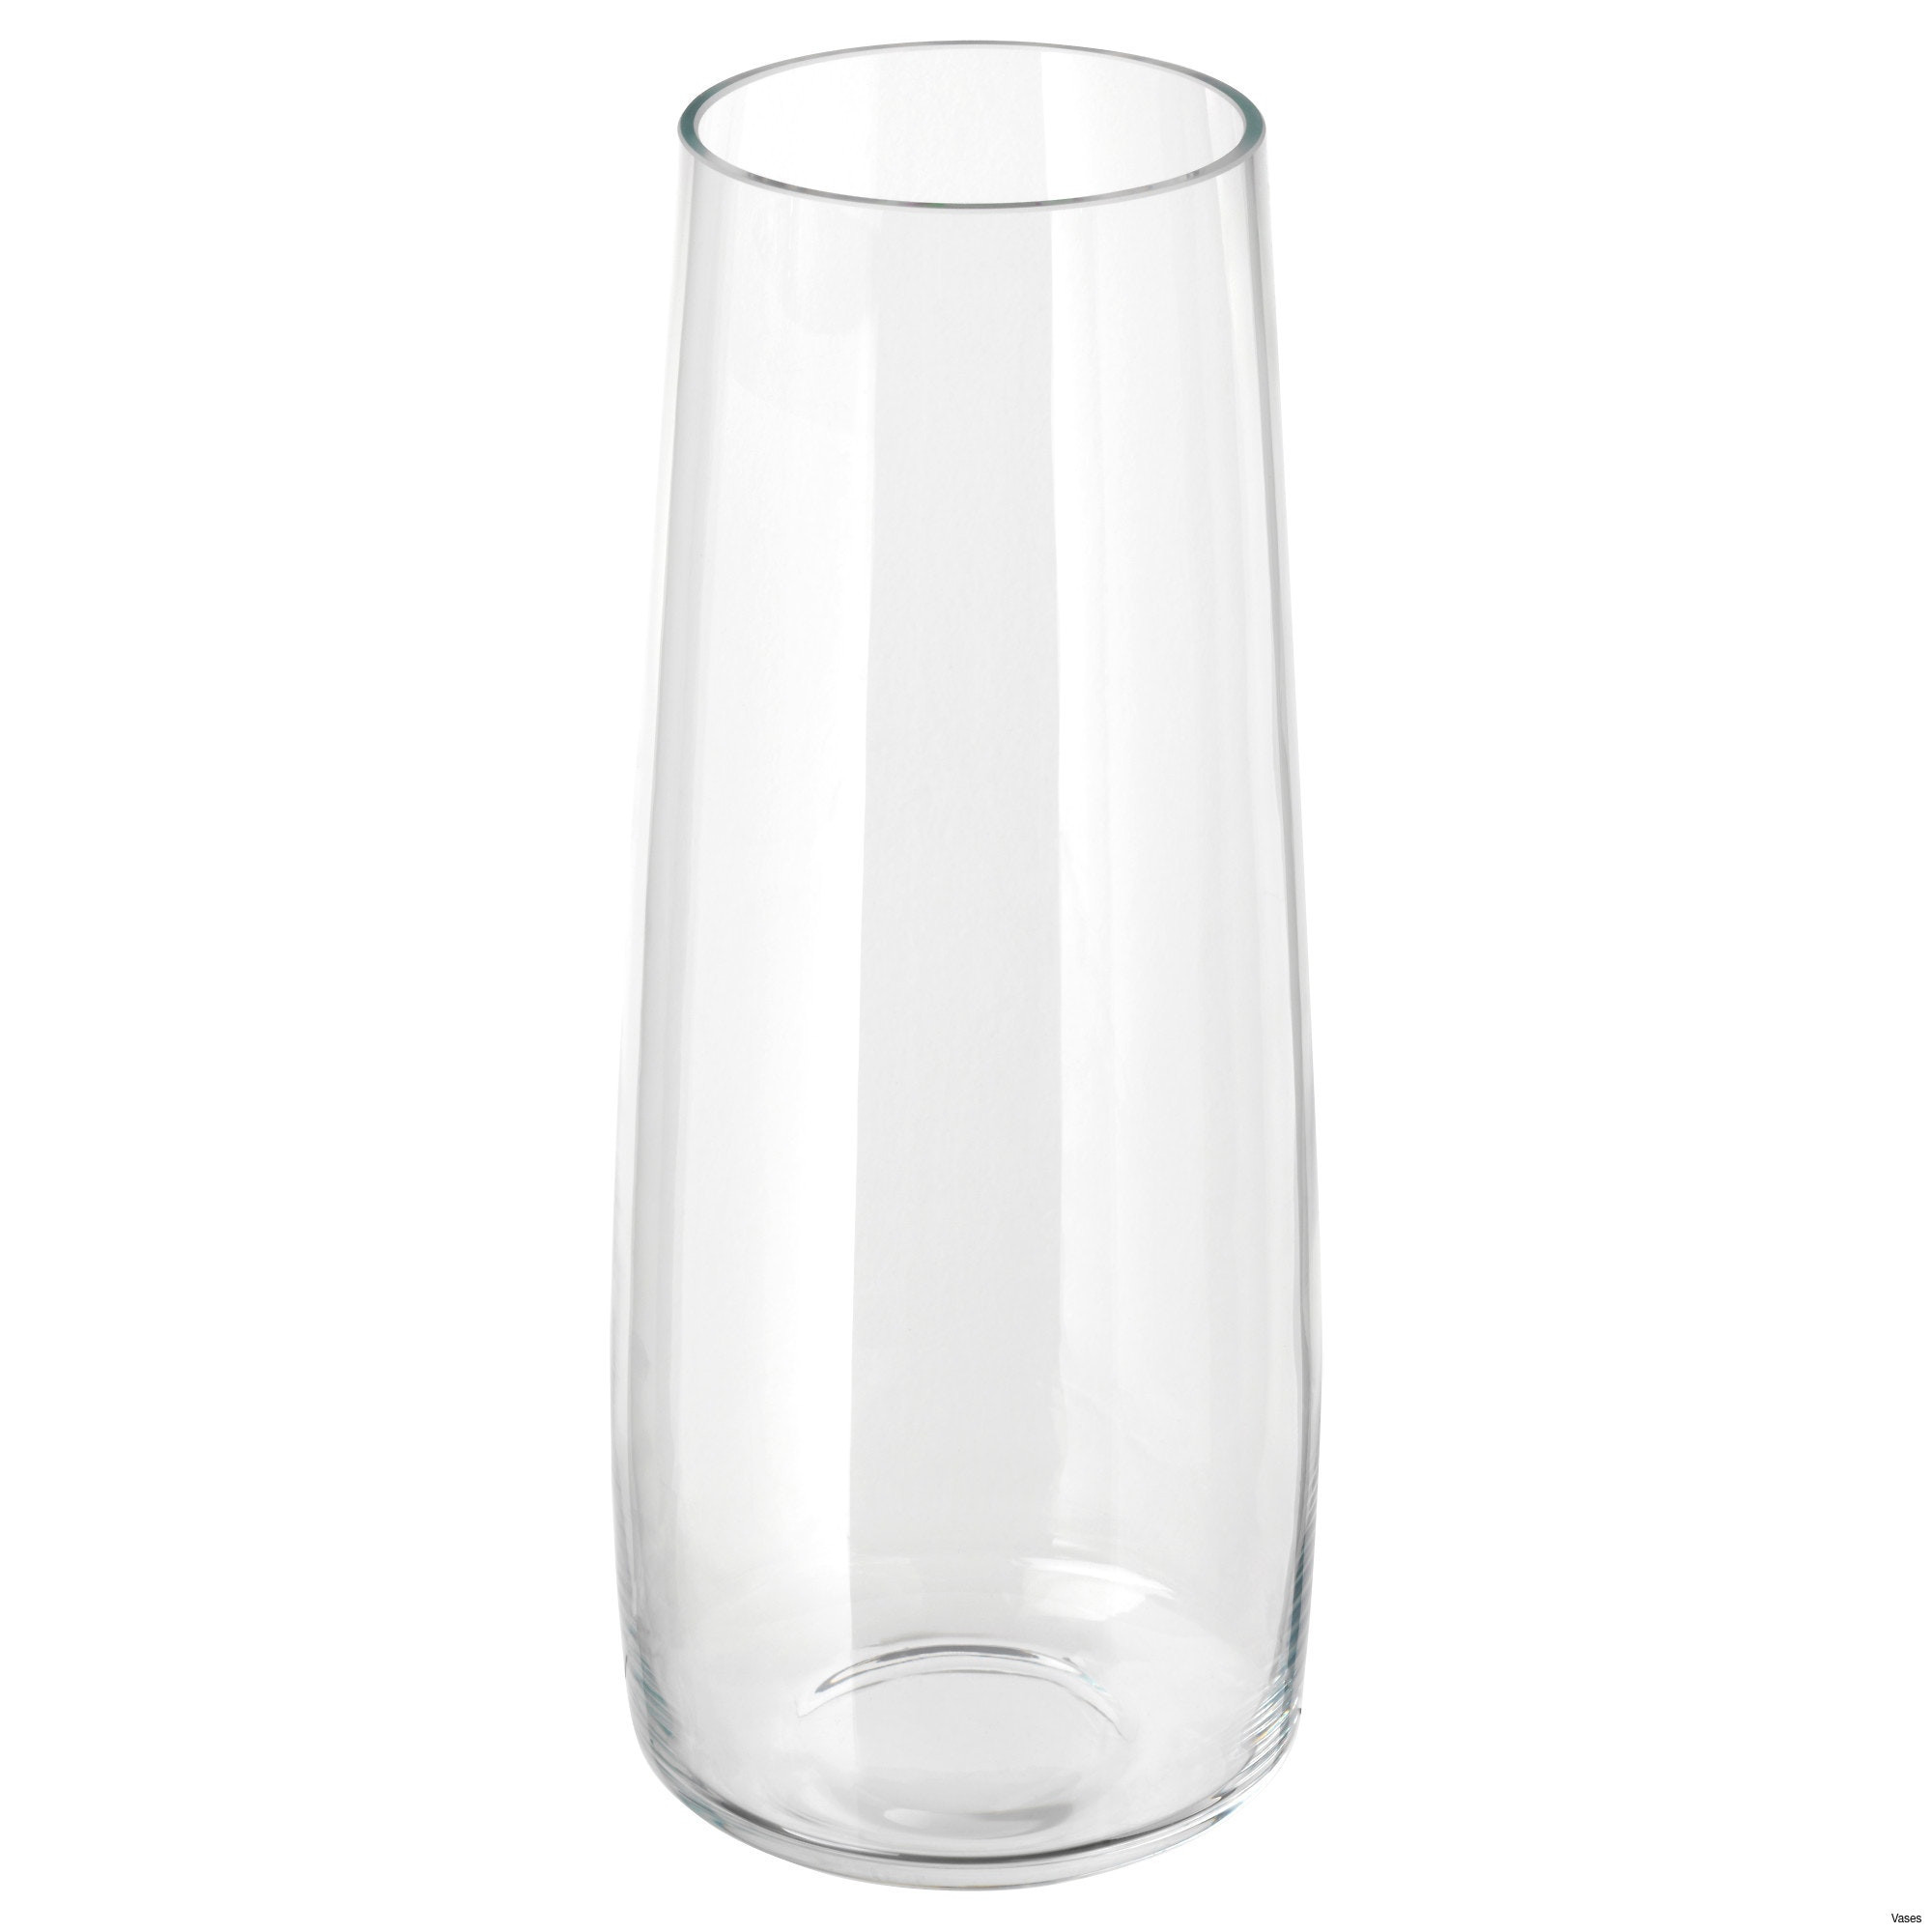 29 Lovable Scandinavian Bubble Glass Vase 2021 free download scandinavian bubble glass vase of round glass vases photograph clear glass planters fresh clear glass regarding clear glass planters fresh clear glass vases